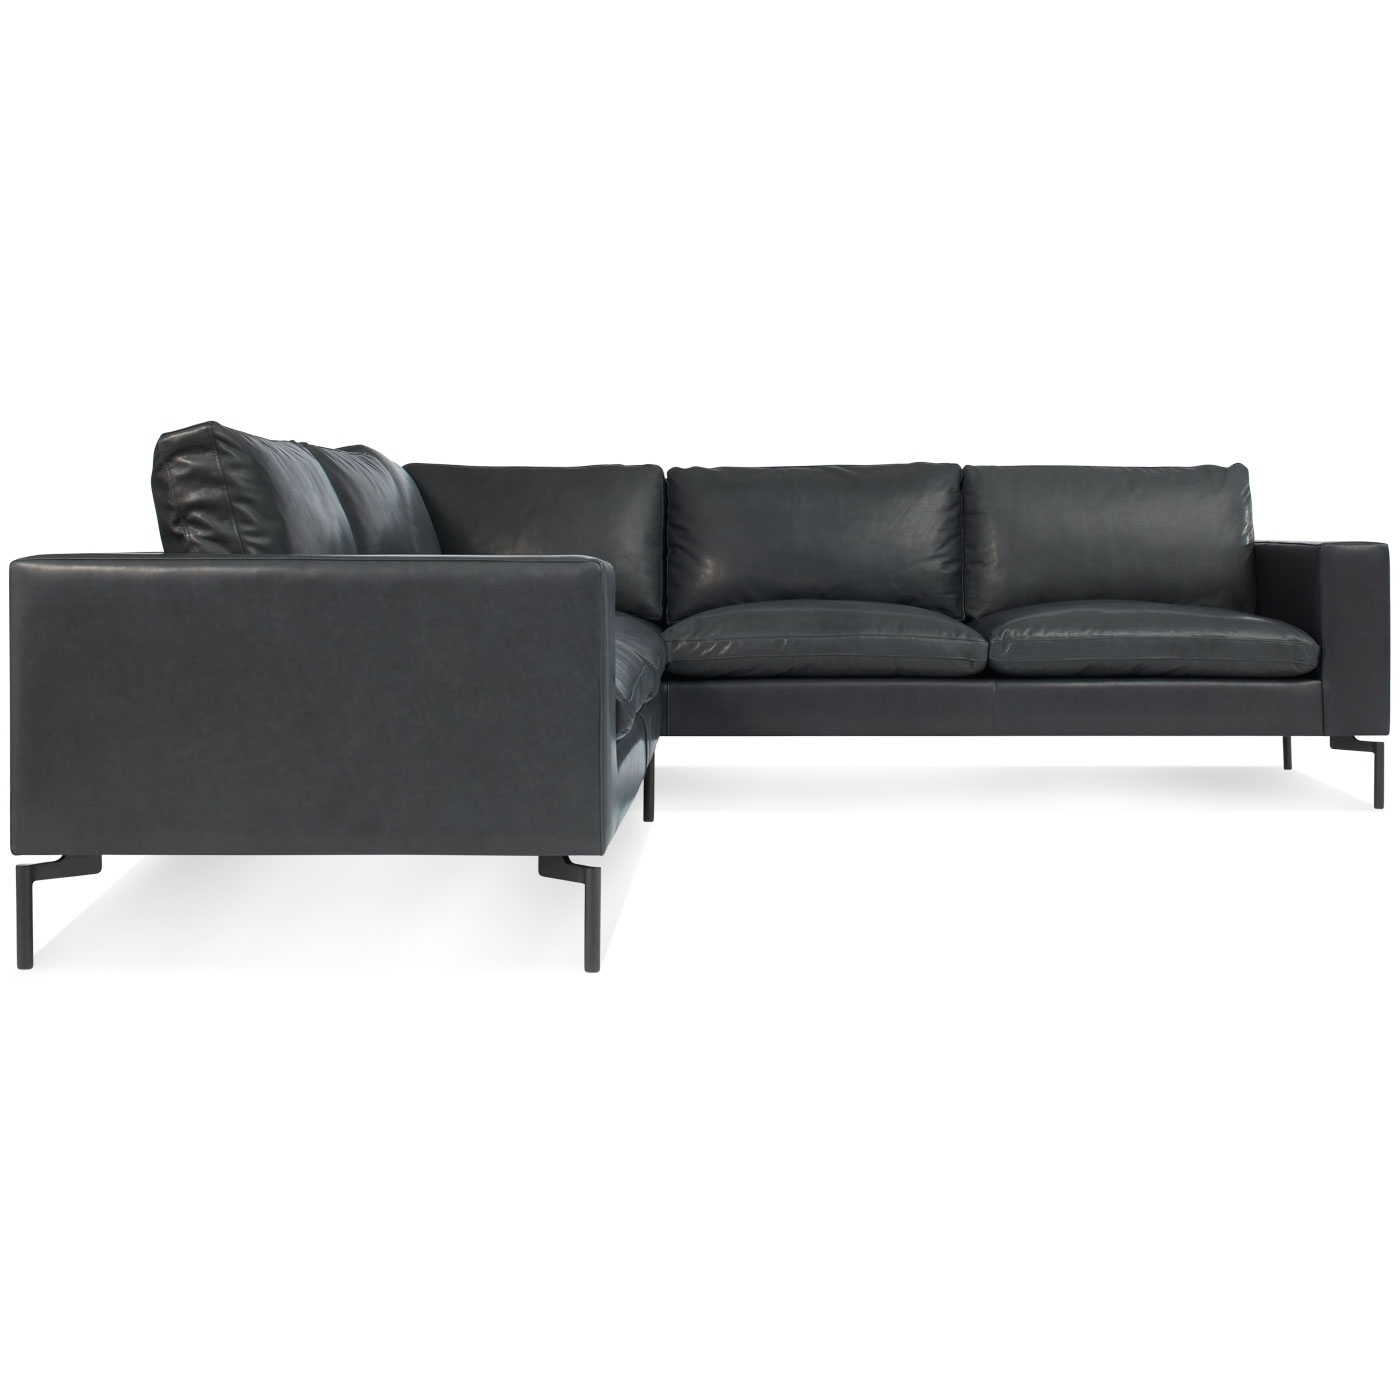 New Standard Small Leather Sectional – Modern Leather Sofa (View 10 of 20)